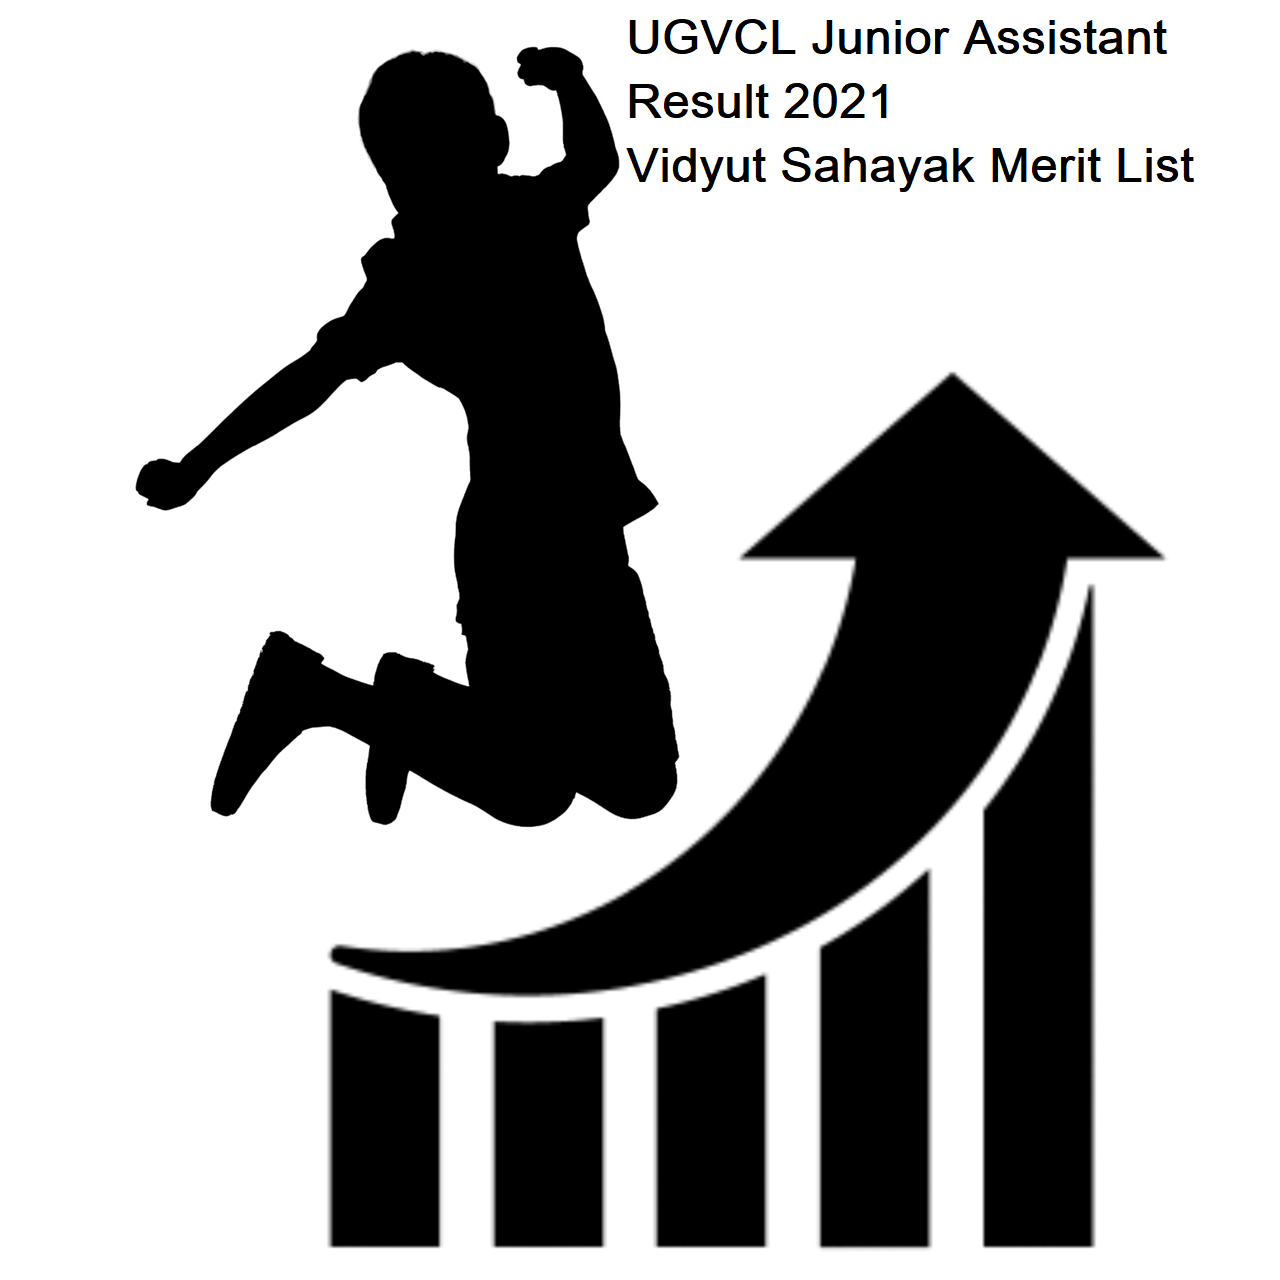 UGVCL Junior Assistant Result